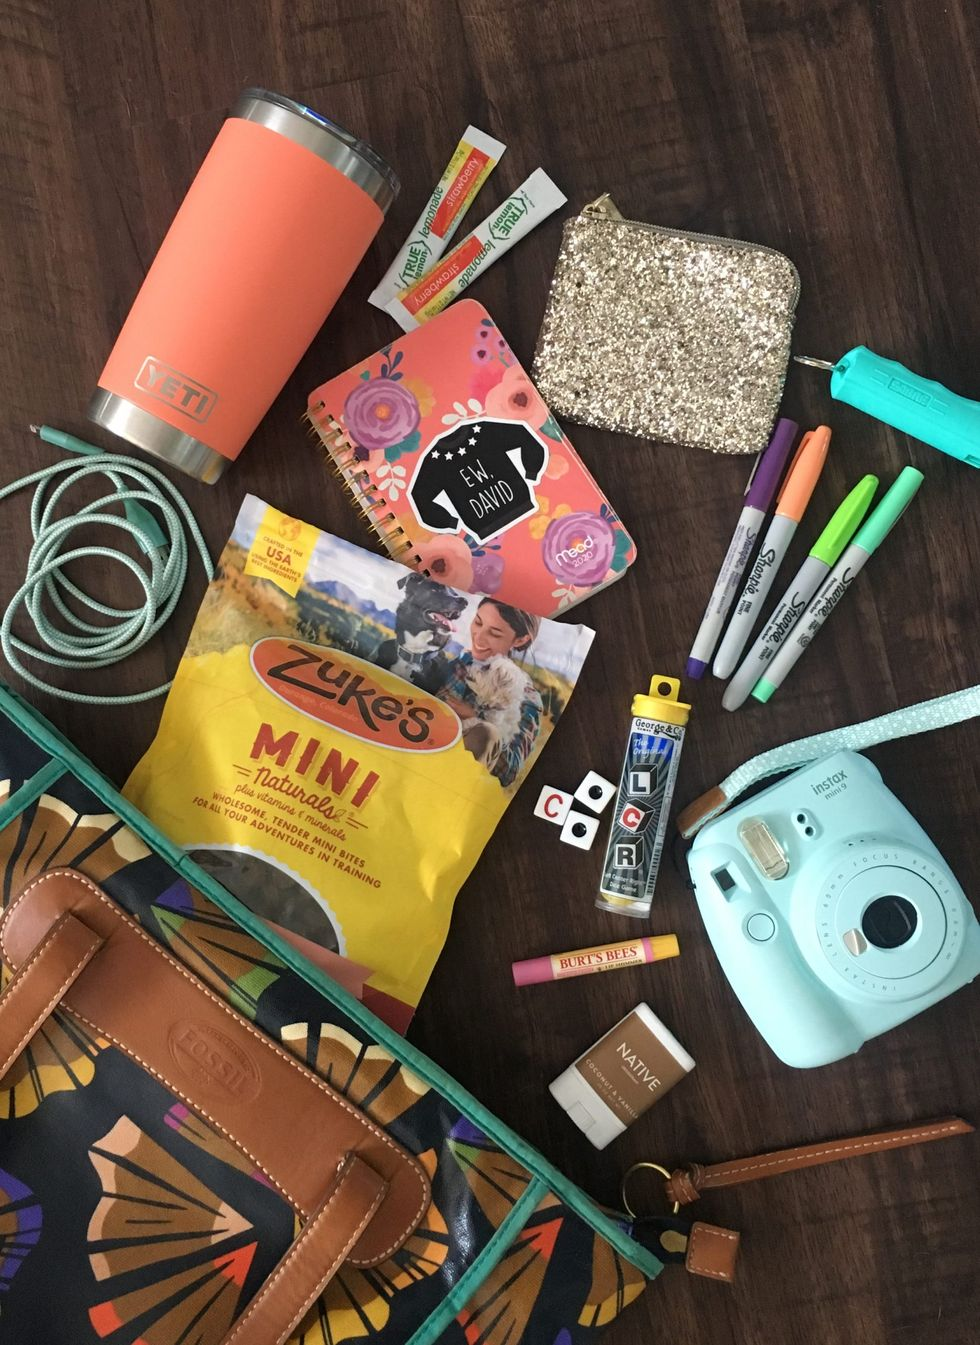 My Bag Runneth Over – Here Are 12 Products I Won't Leave Home Without